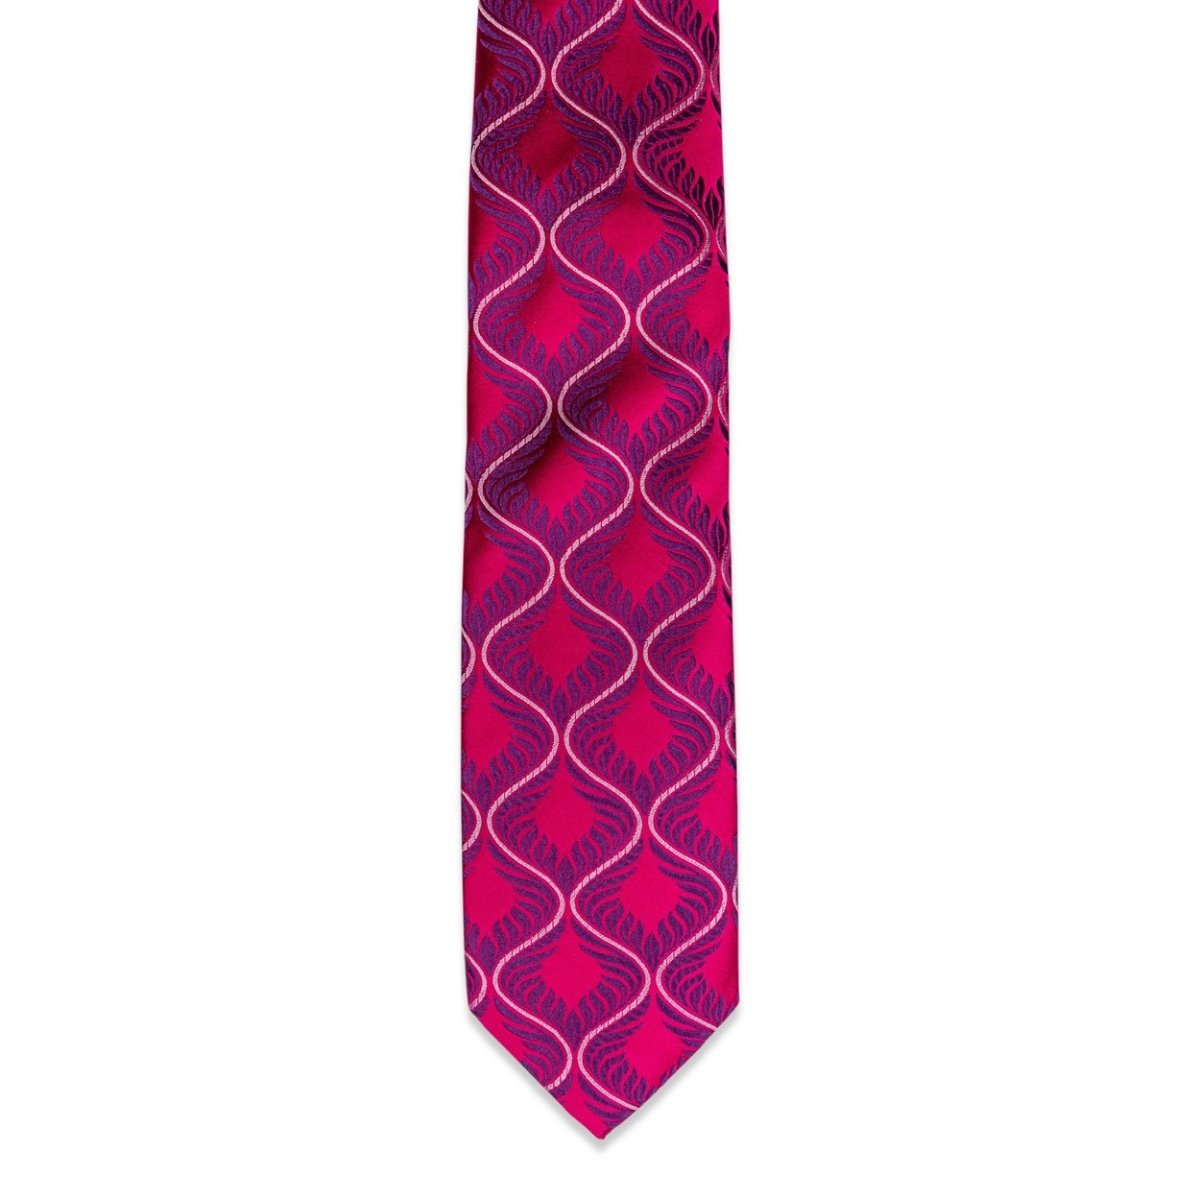 Penrose - Das, Red & Purple, Dassen | NEW TAILOR Webshop